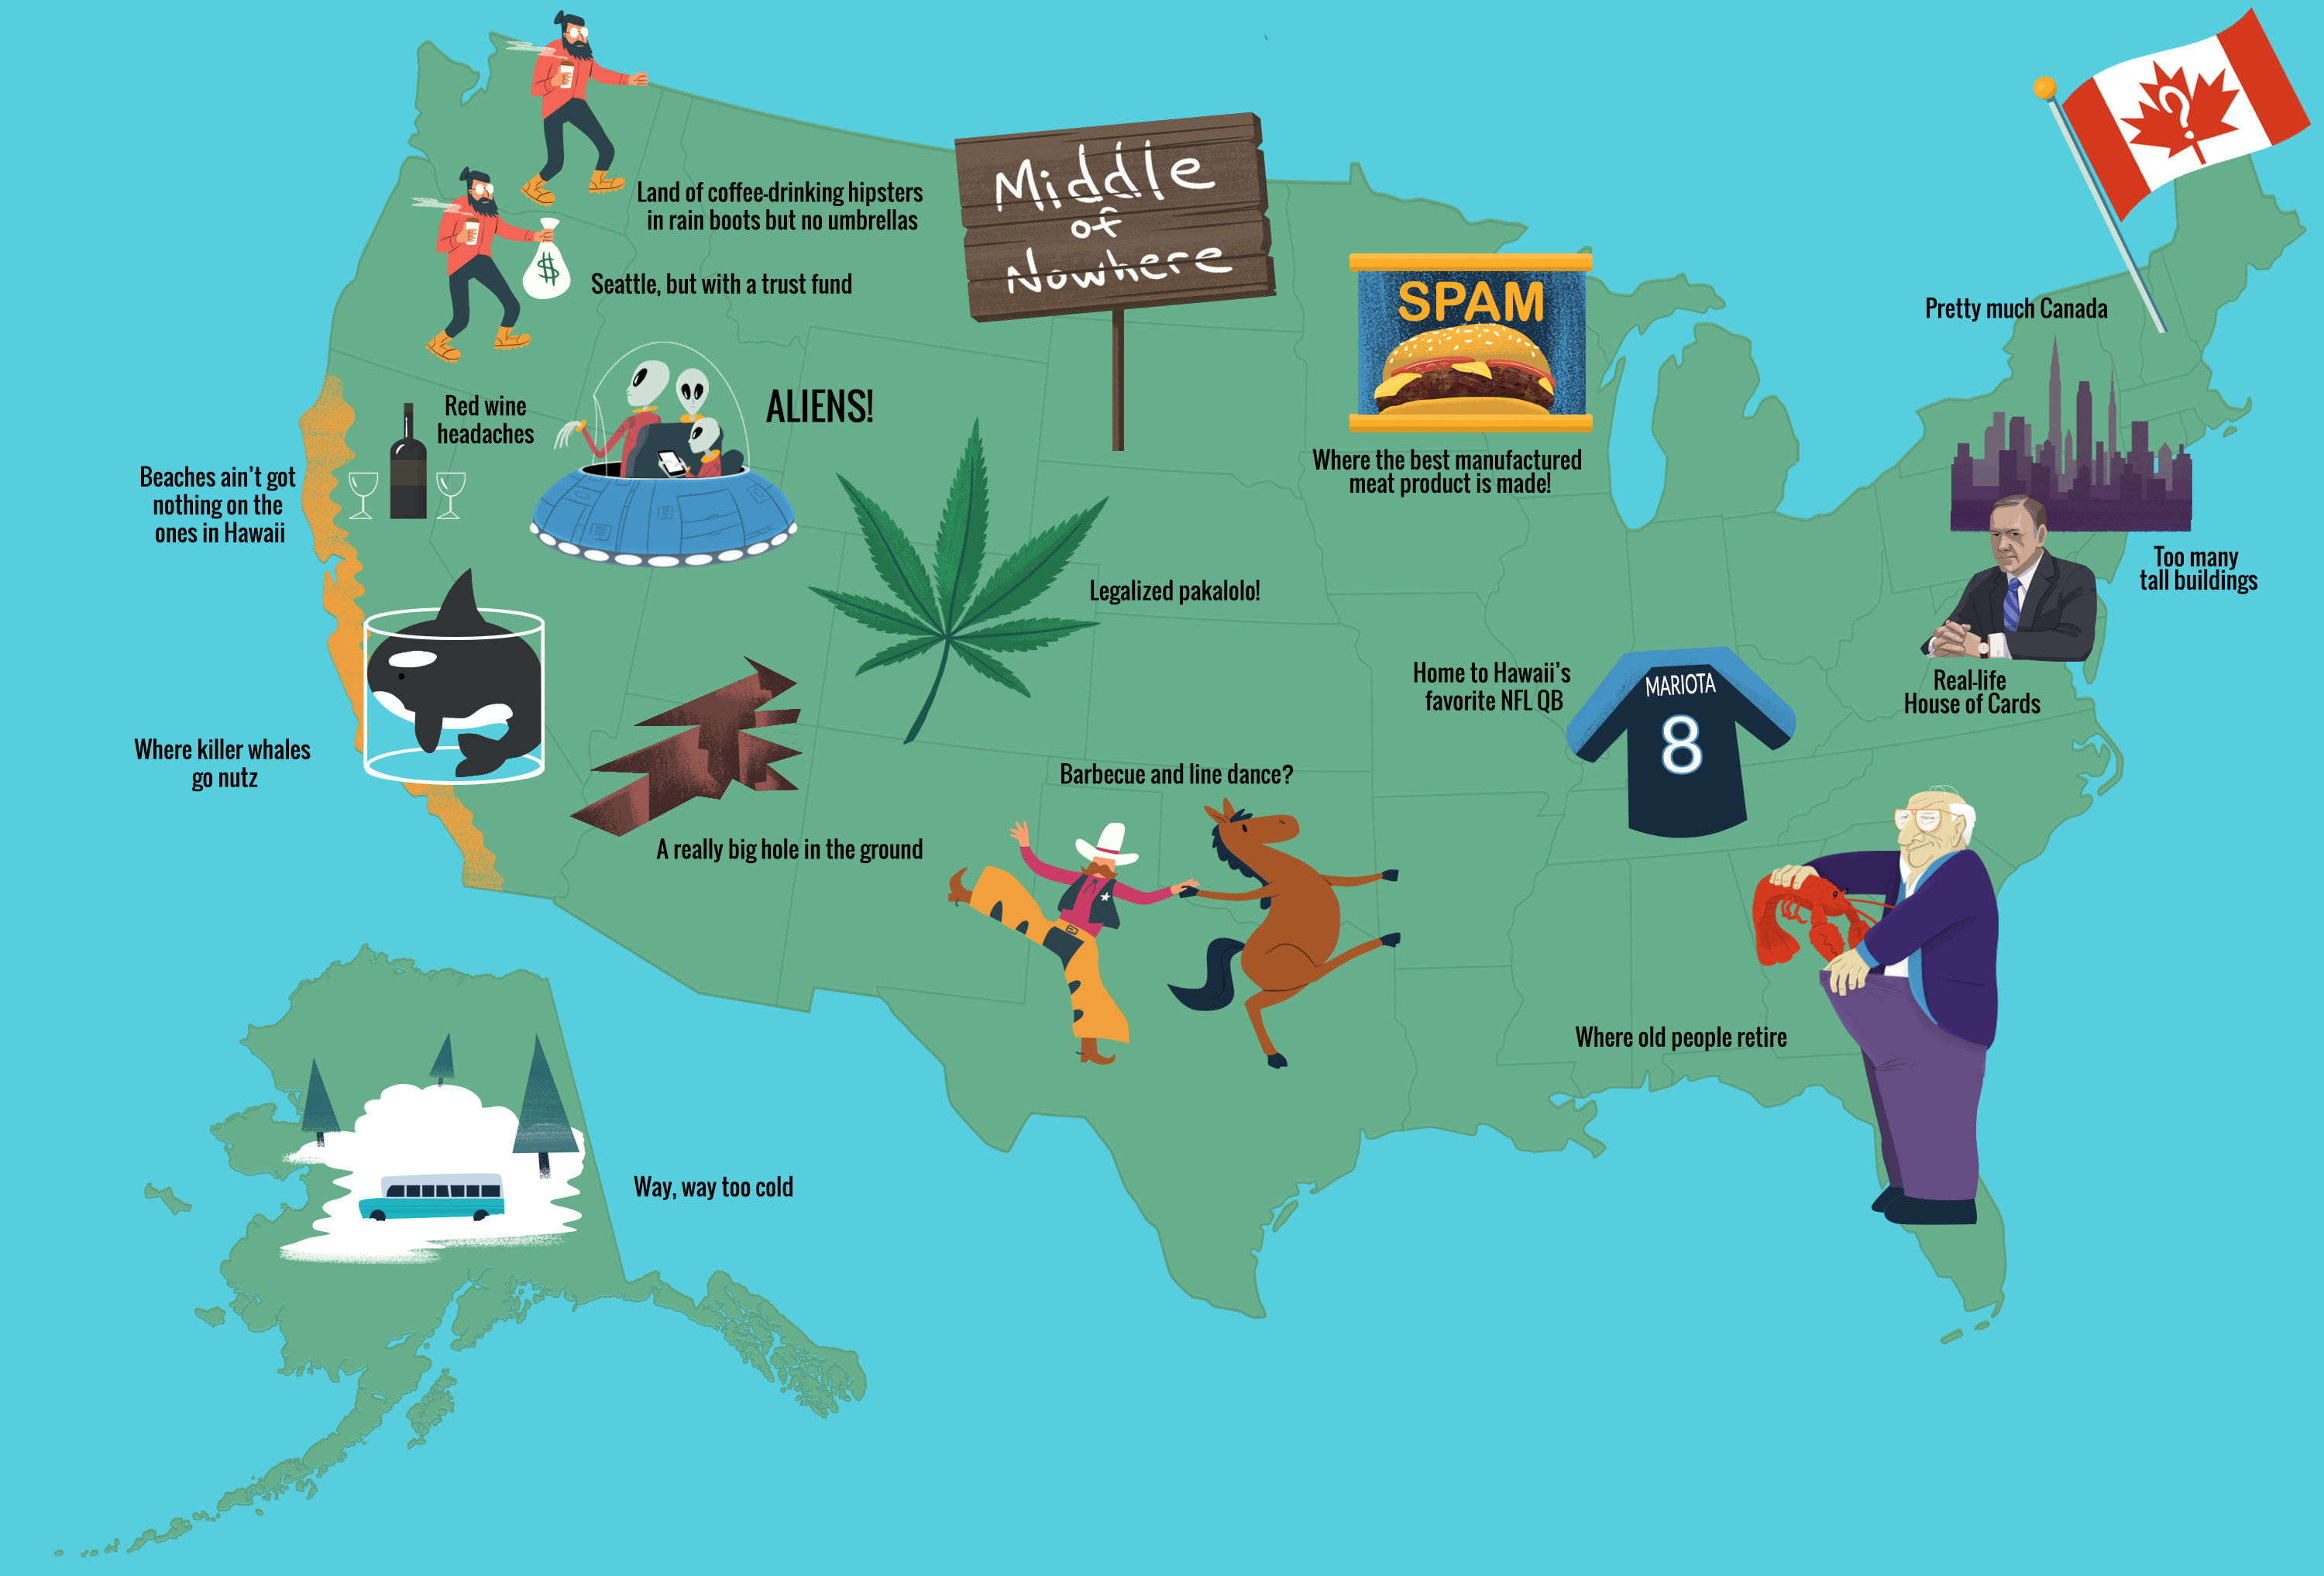 Map Of The United States Of America According To Hawaii Thrillist - Map usa canada hawaii